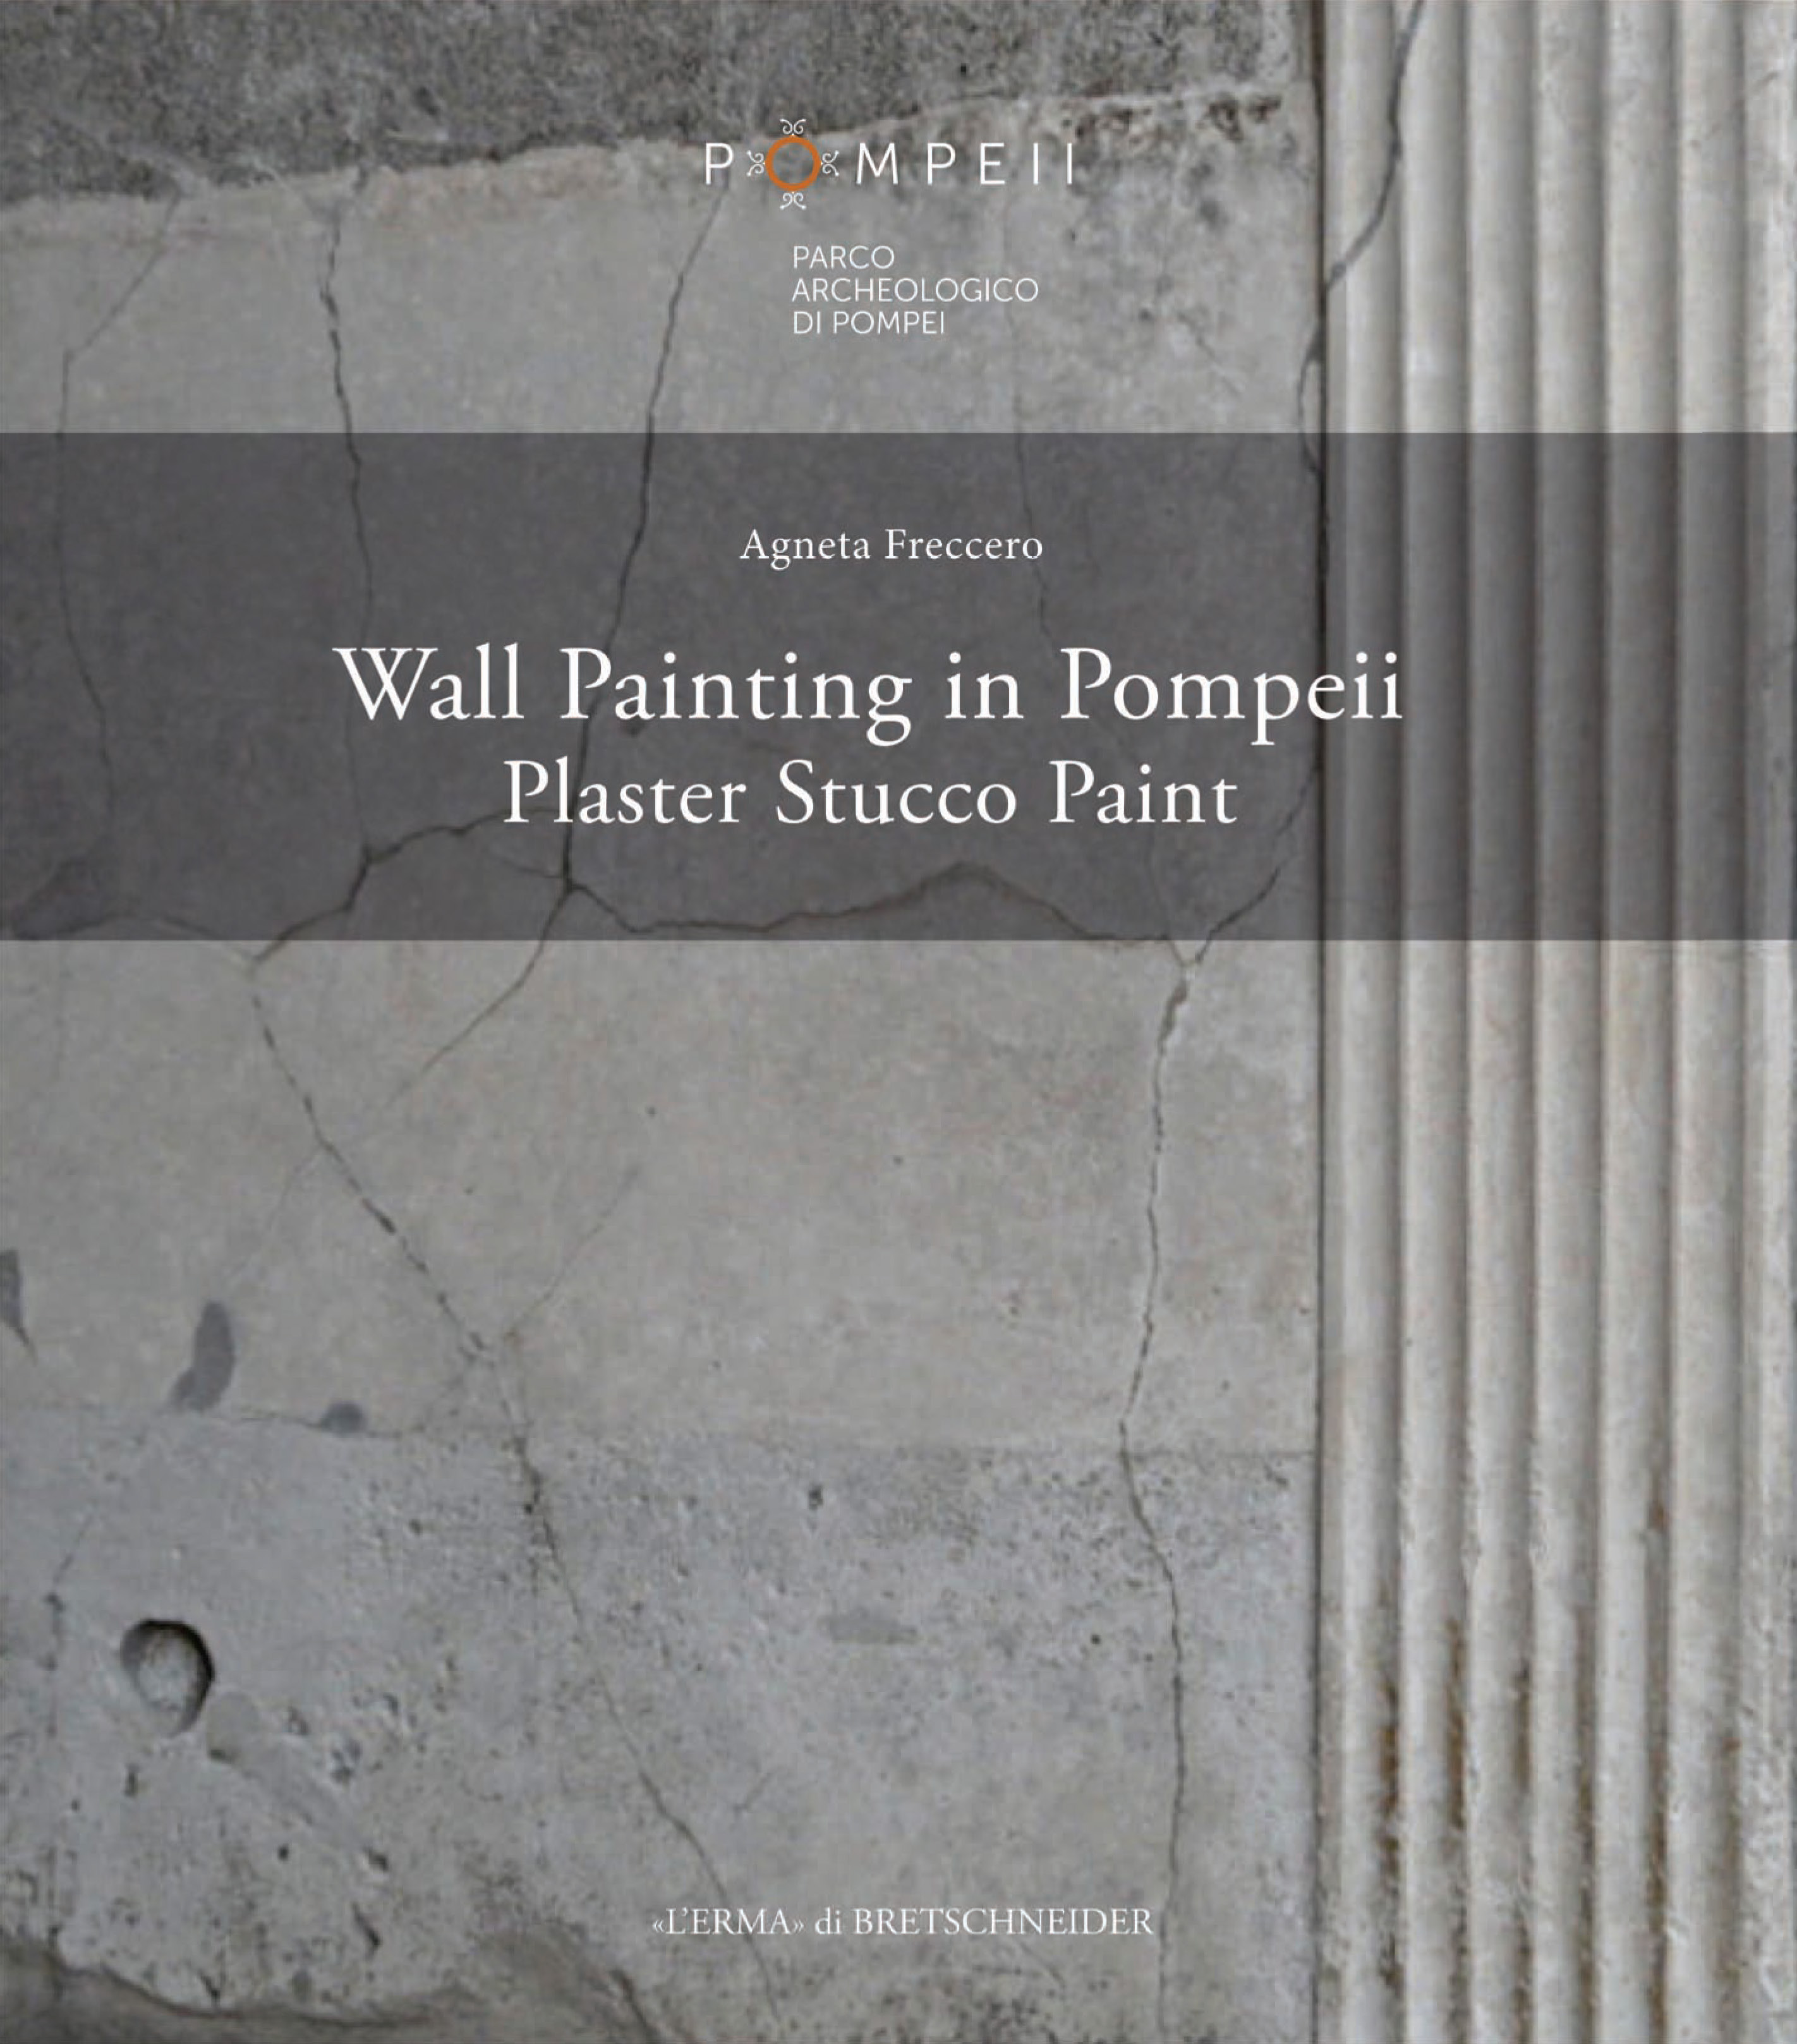 Wall Painting in Pompeii.